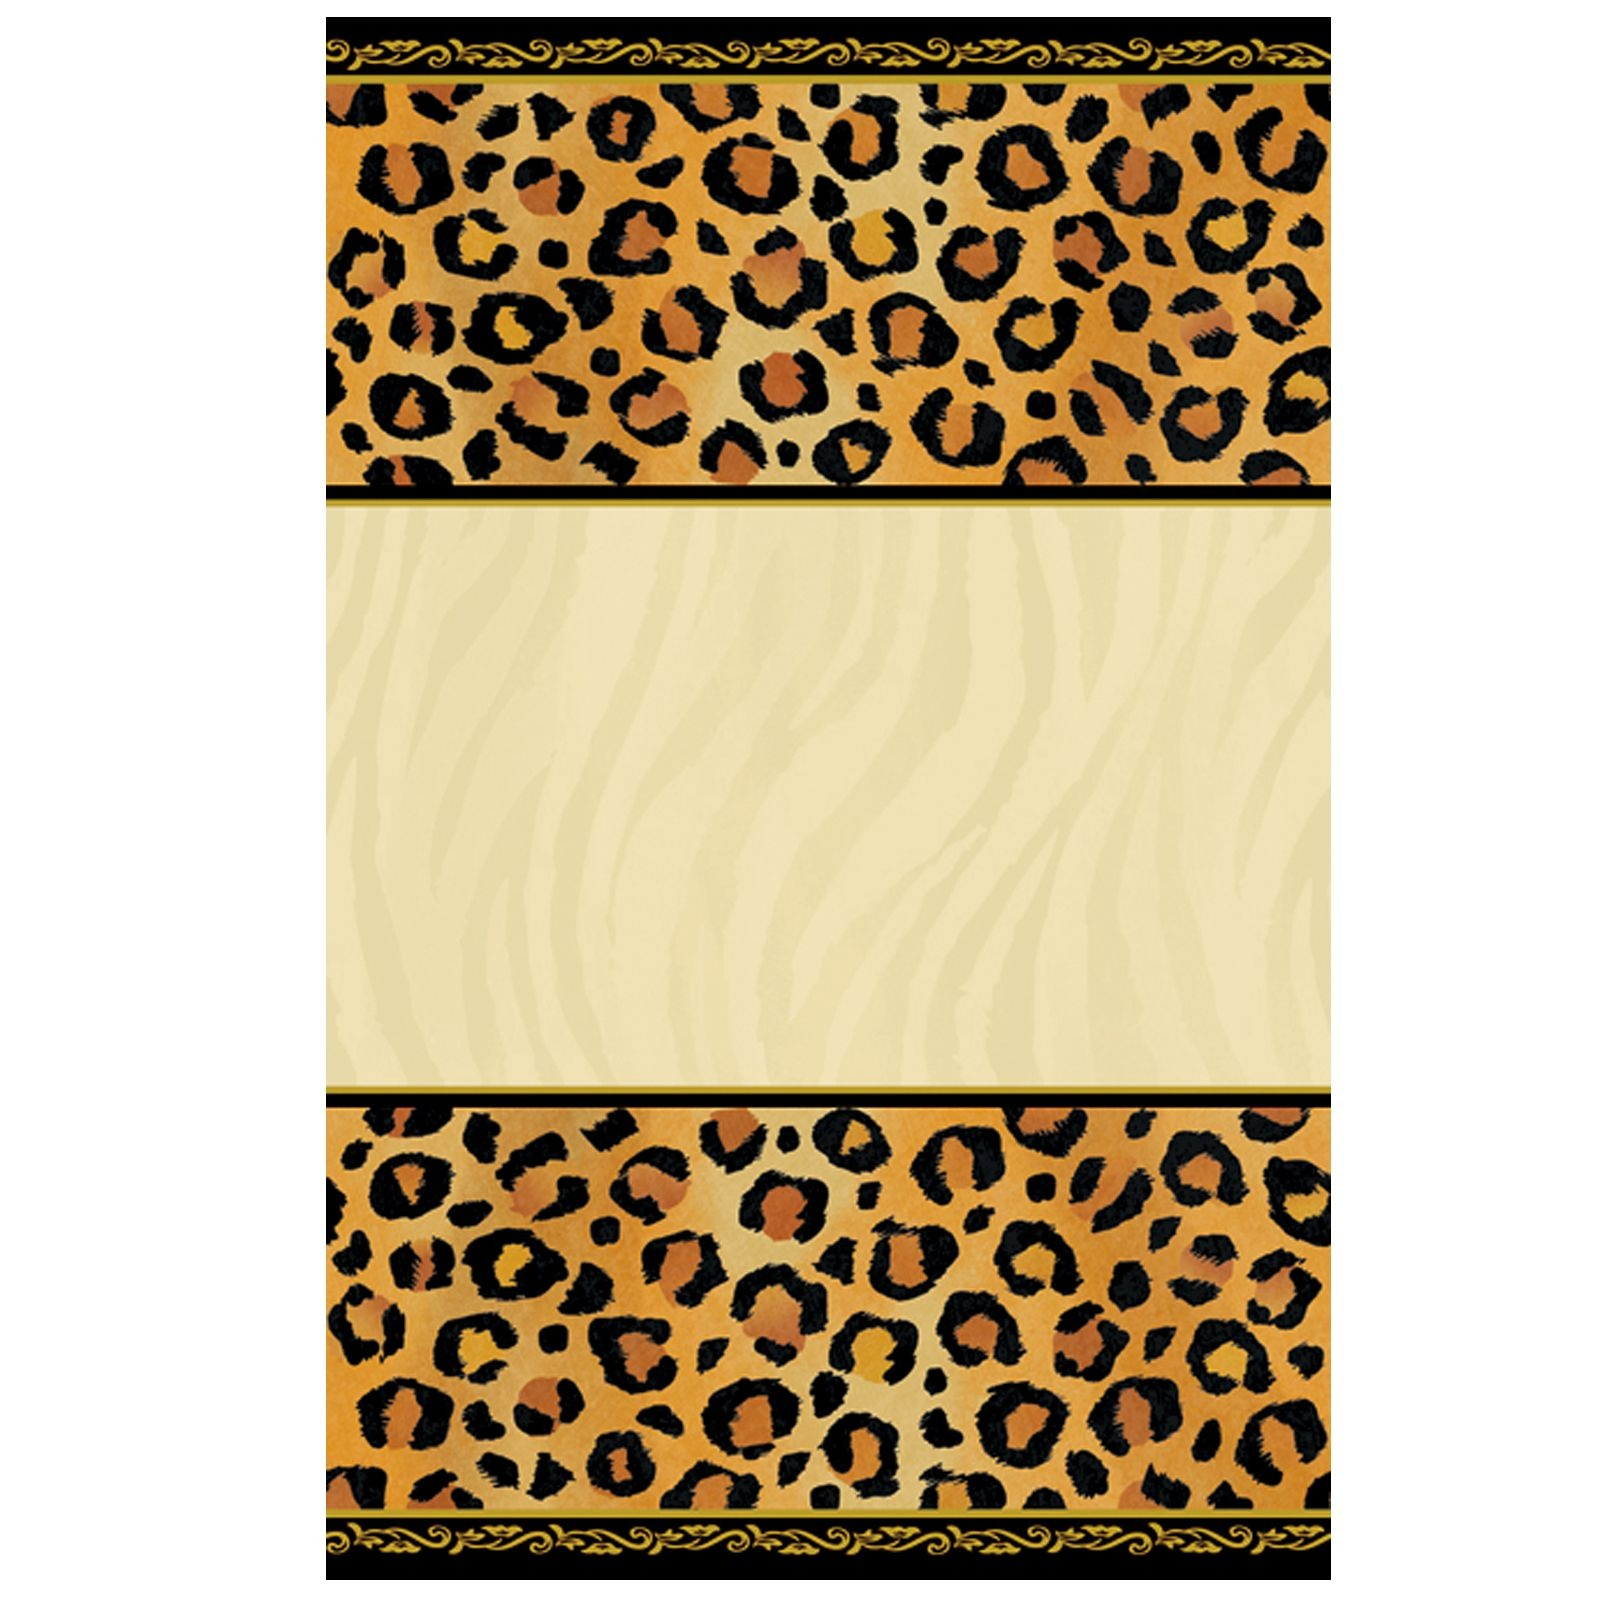 Leopard Print Invitations Printable Free Cakepins | Printables - Free Printable Cheetah Birthday Invitations